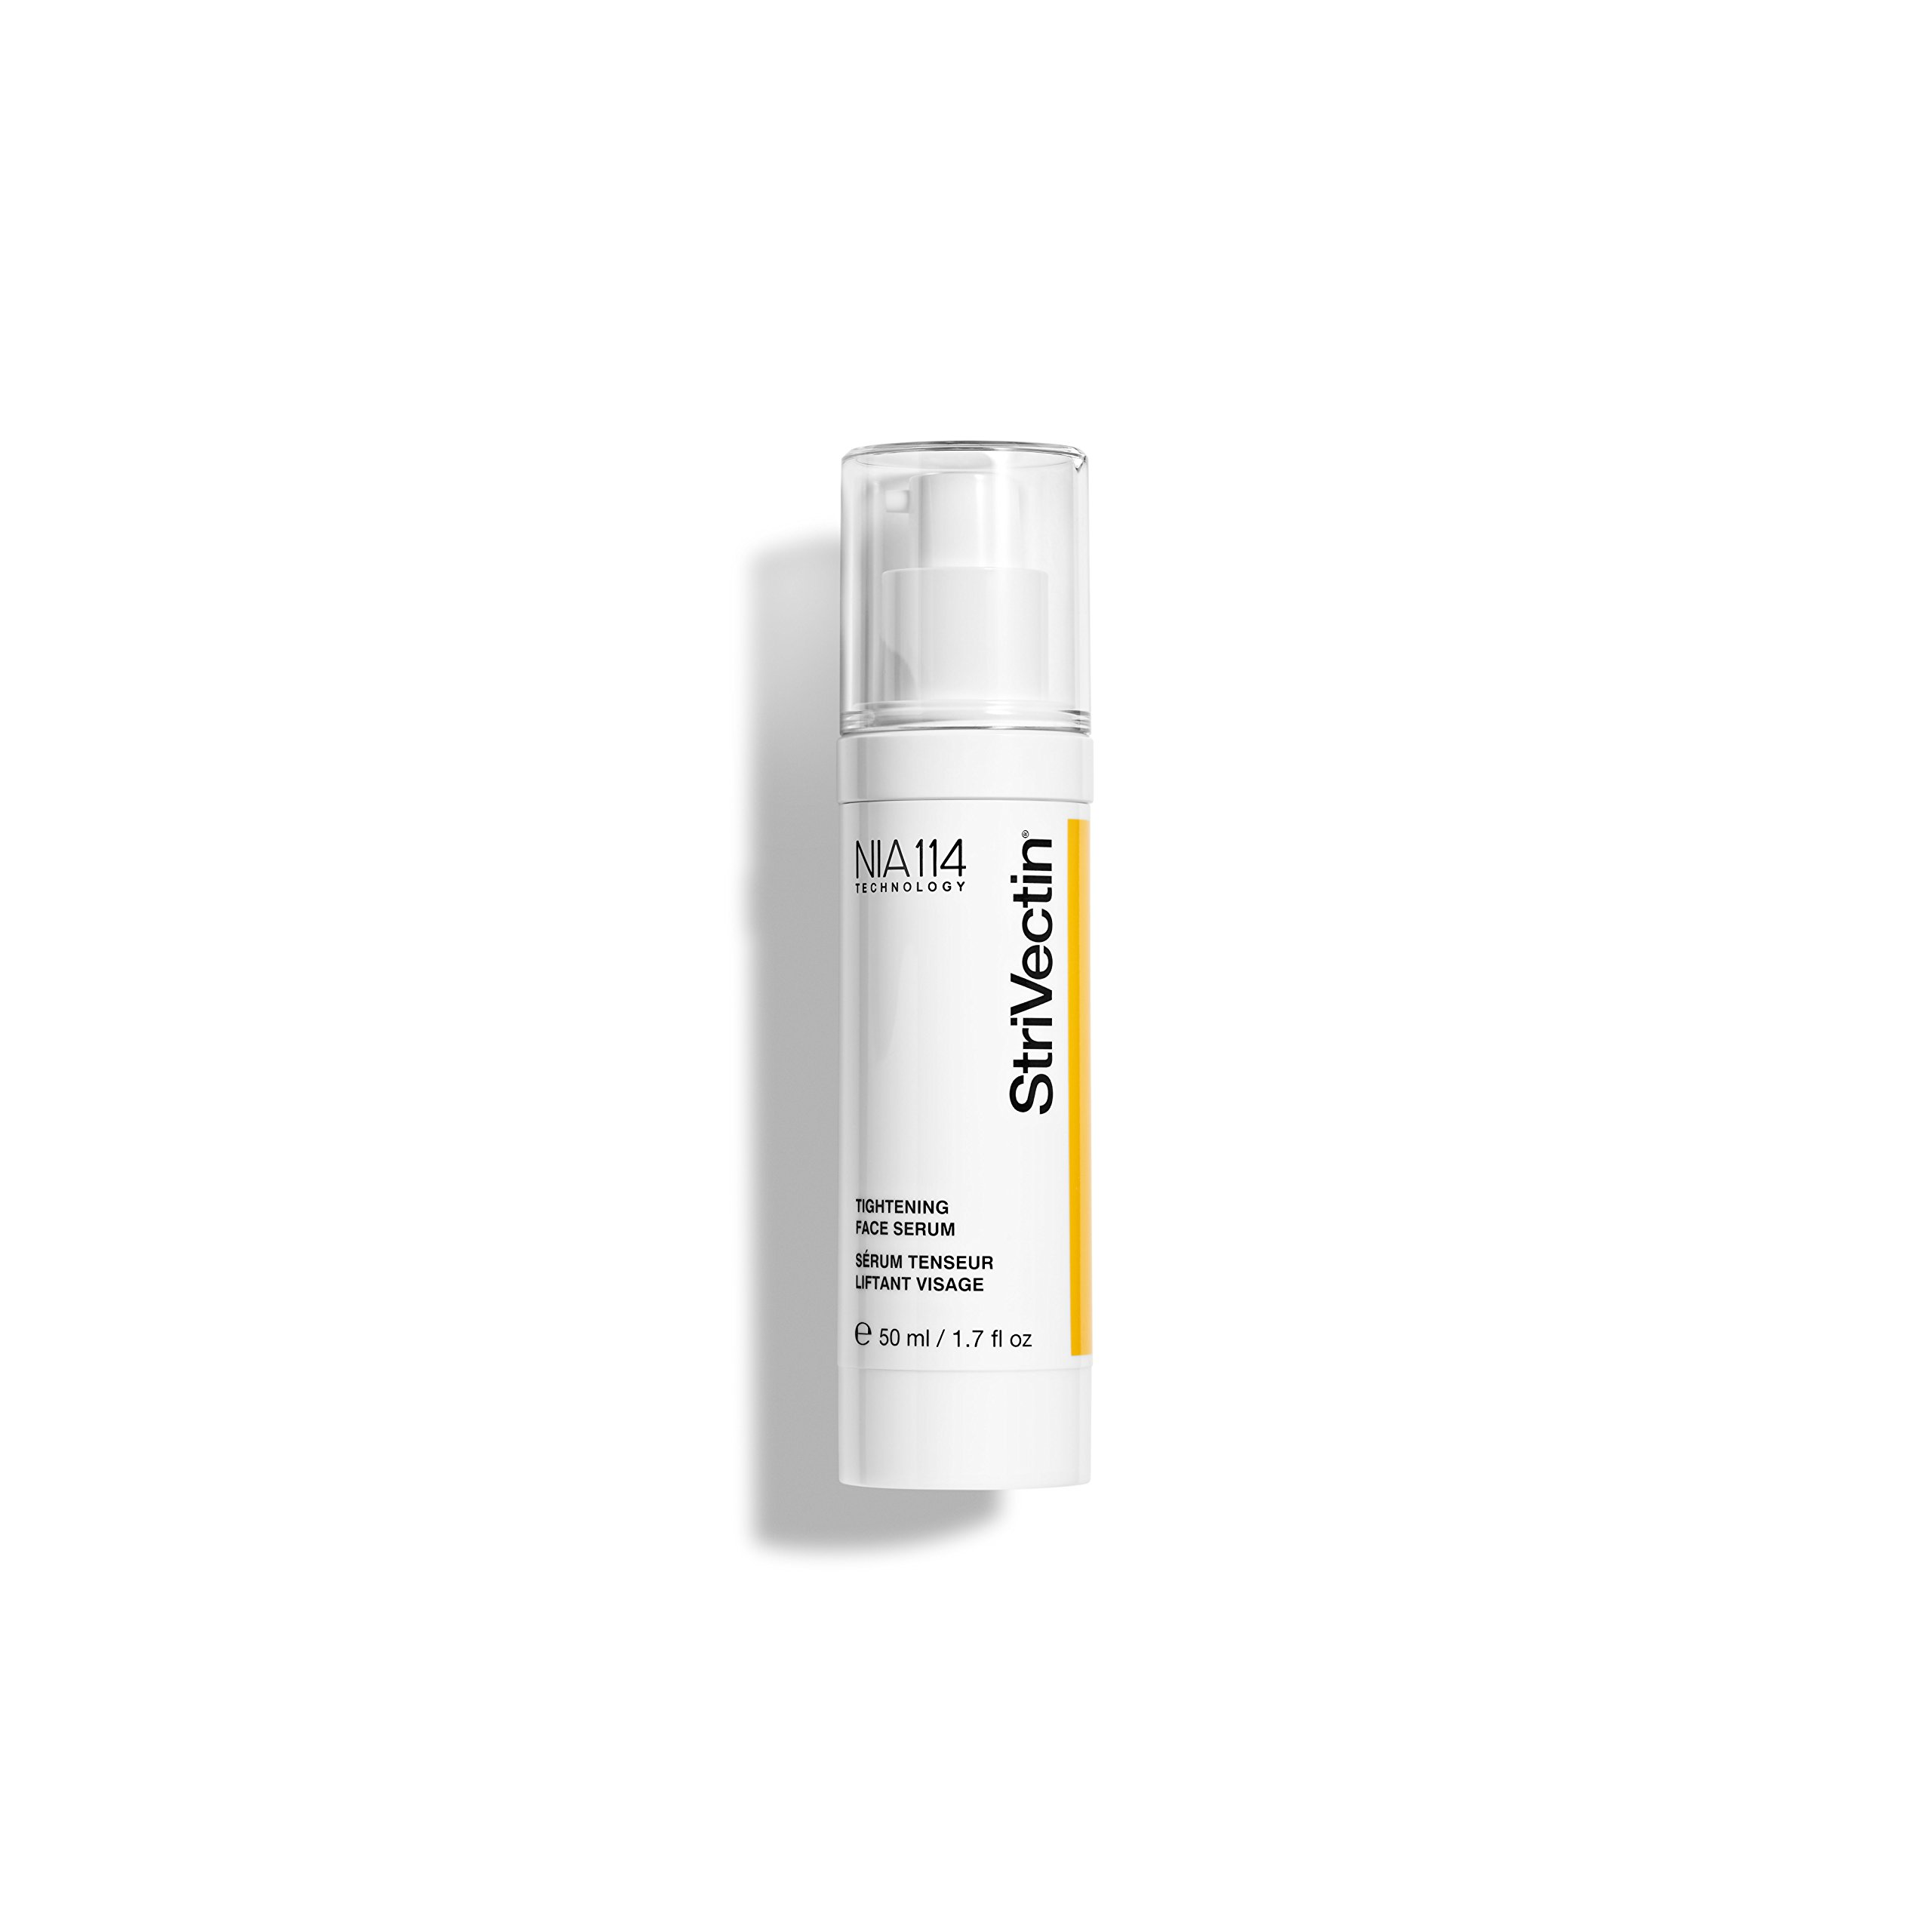 StriVectin Tightening Face Serum, 1.7 Fl Oz